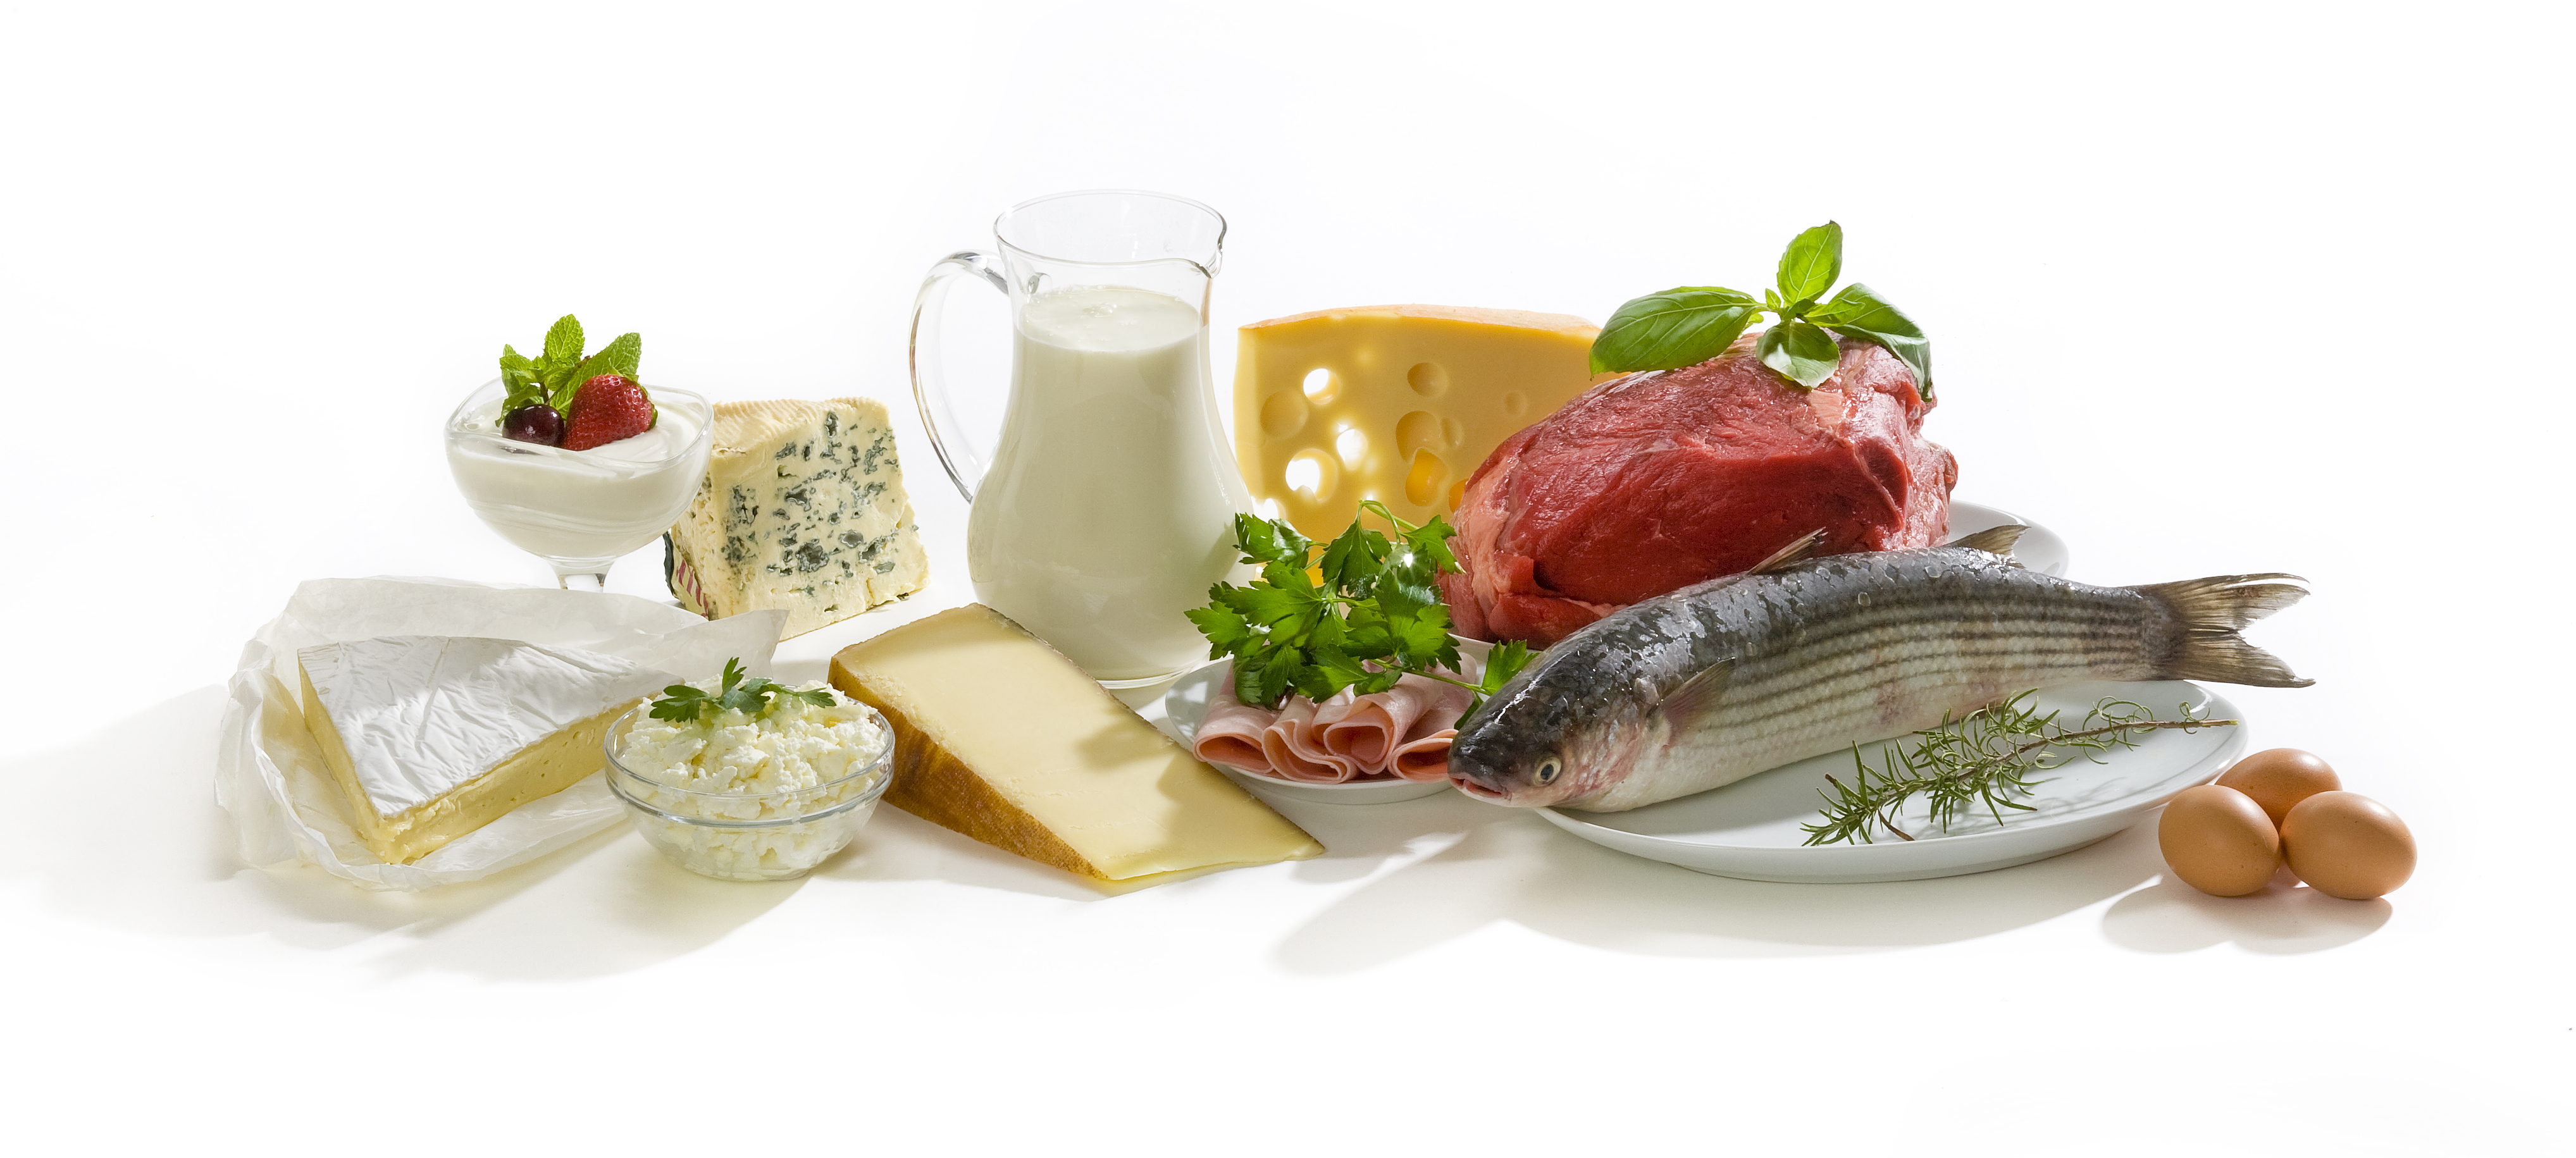 High-Protein Foods and the Grams of Protein in Each